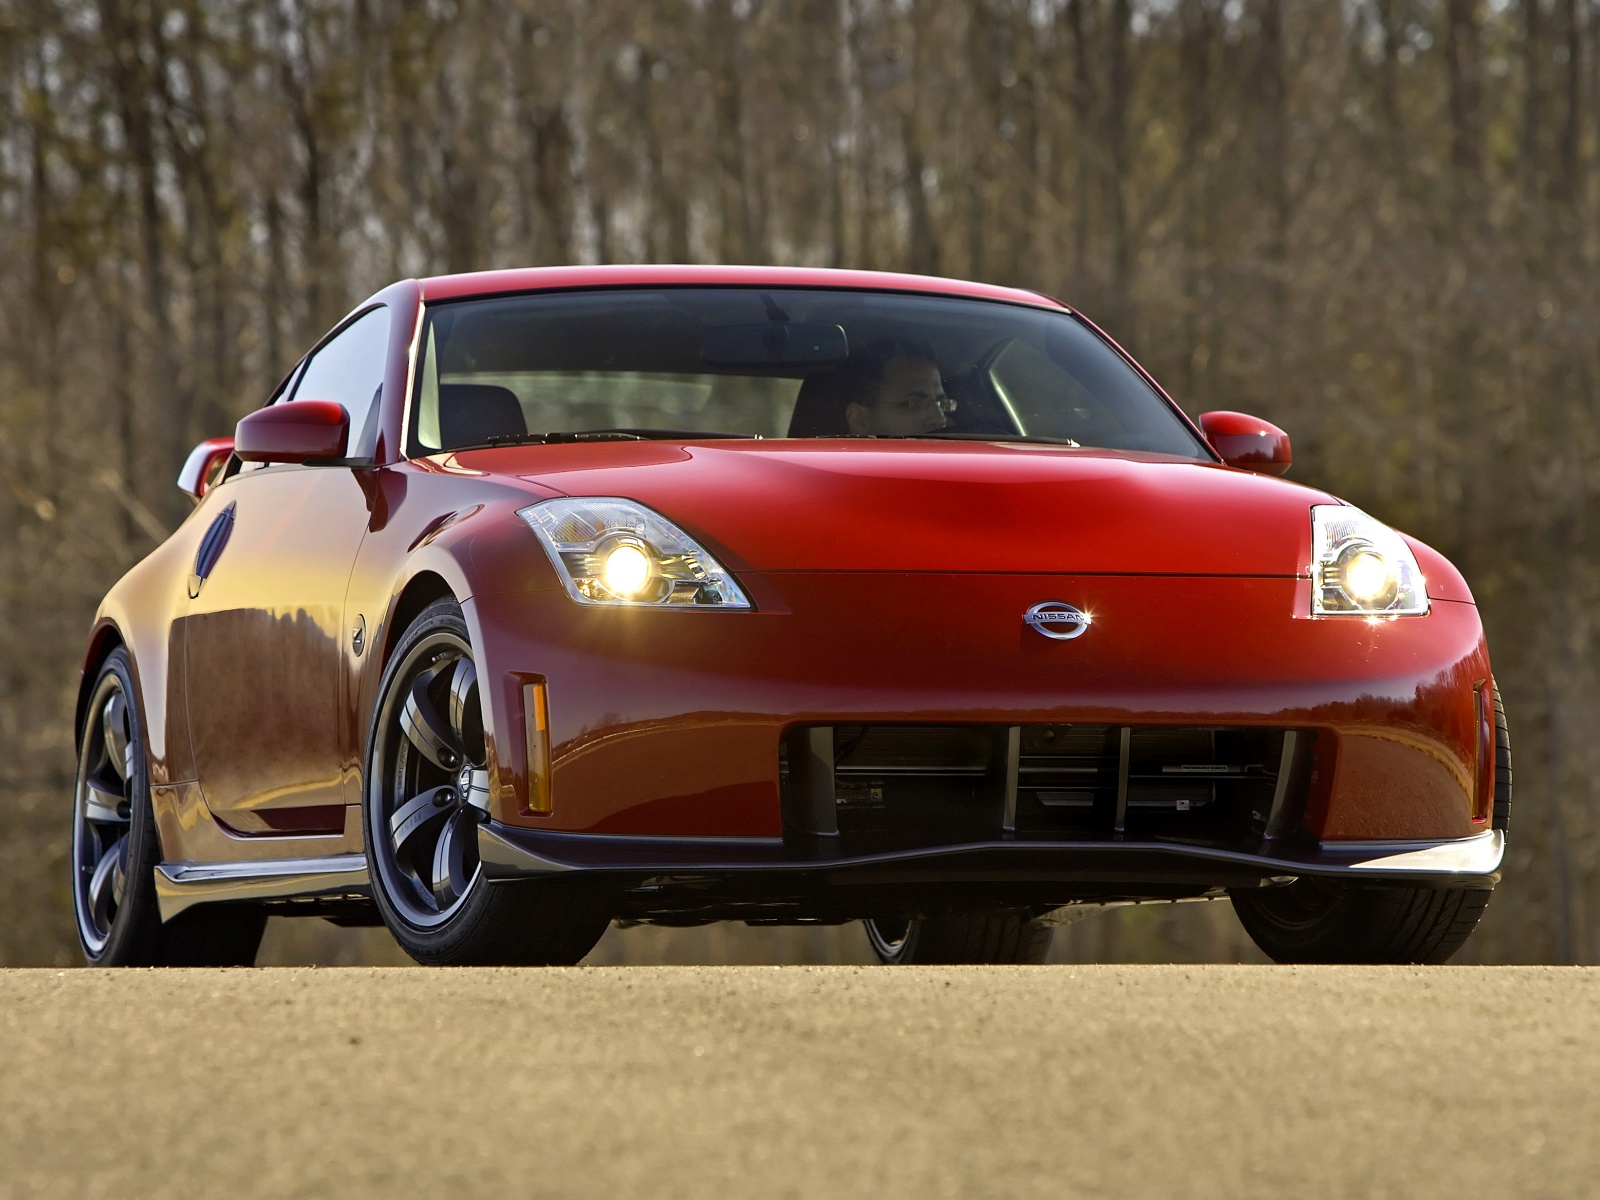 2008 nissan 350z nismo wallpapers pictures specifications interiors and exteriors images. Black Bedroom Furniture Sets. Home Design Ideas